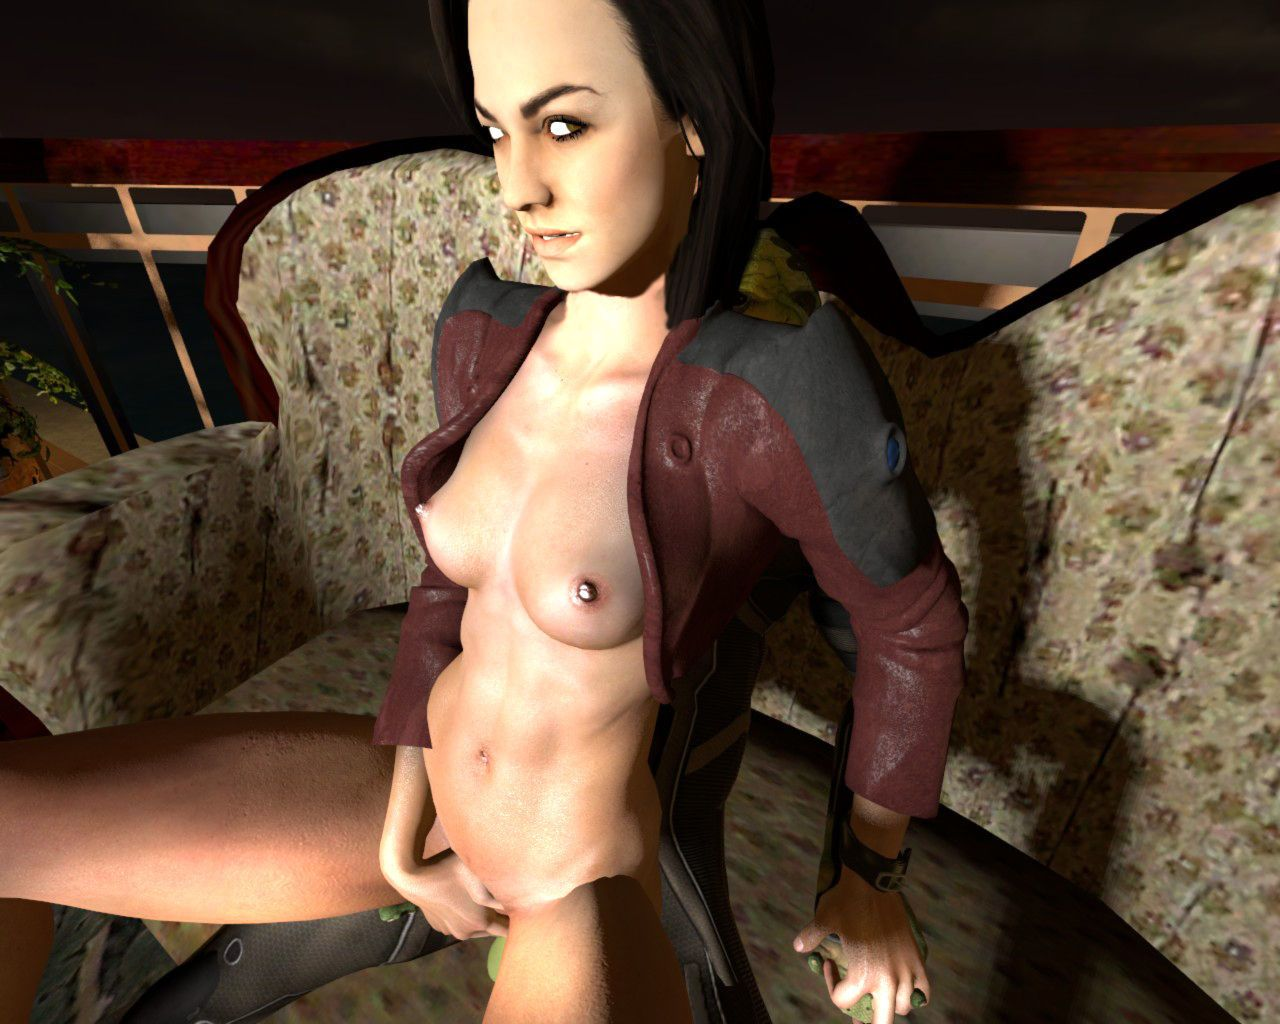 Gmod Pornposes Part 3 - part 2